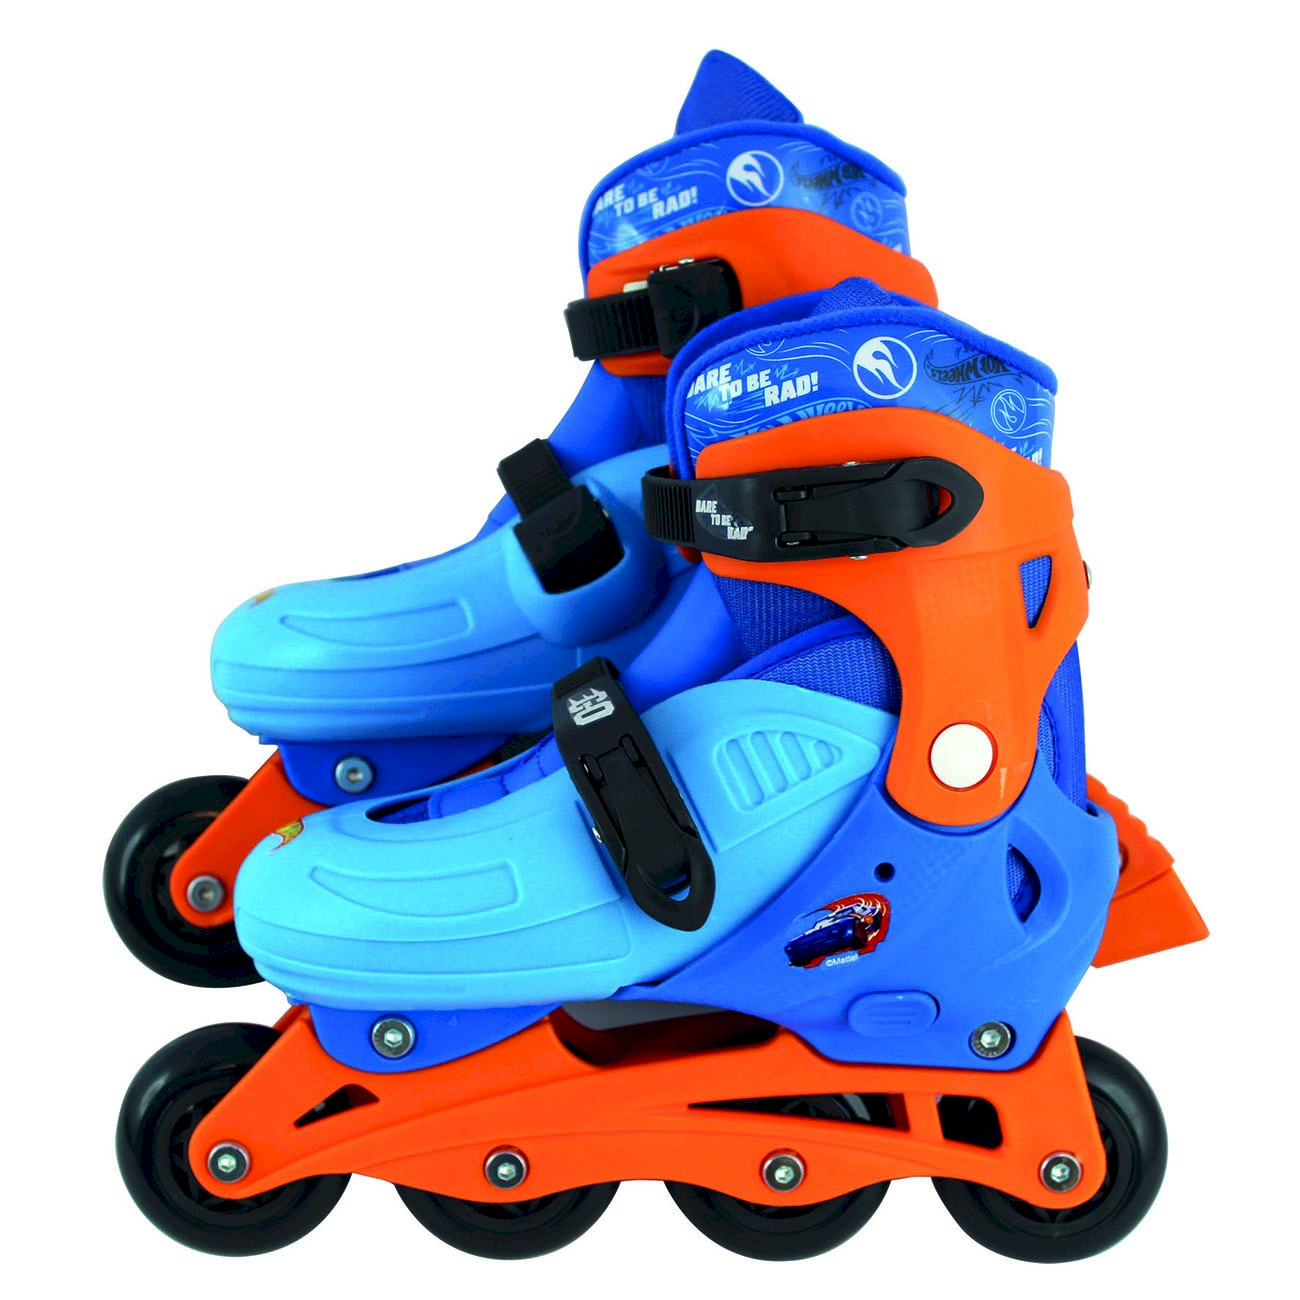 Hot Wheels Patines - Talla M